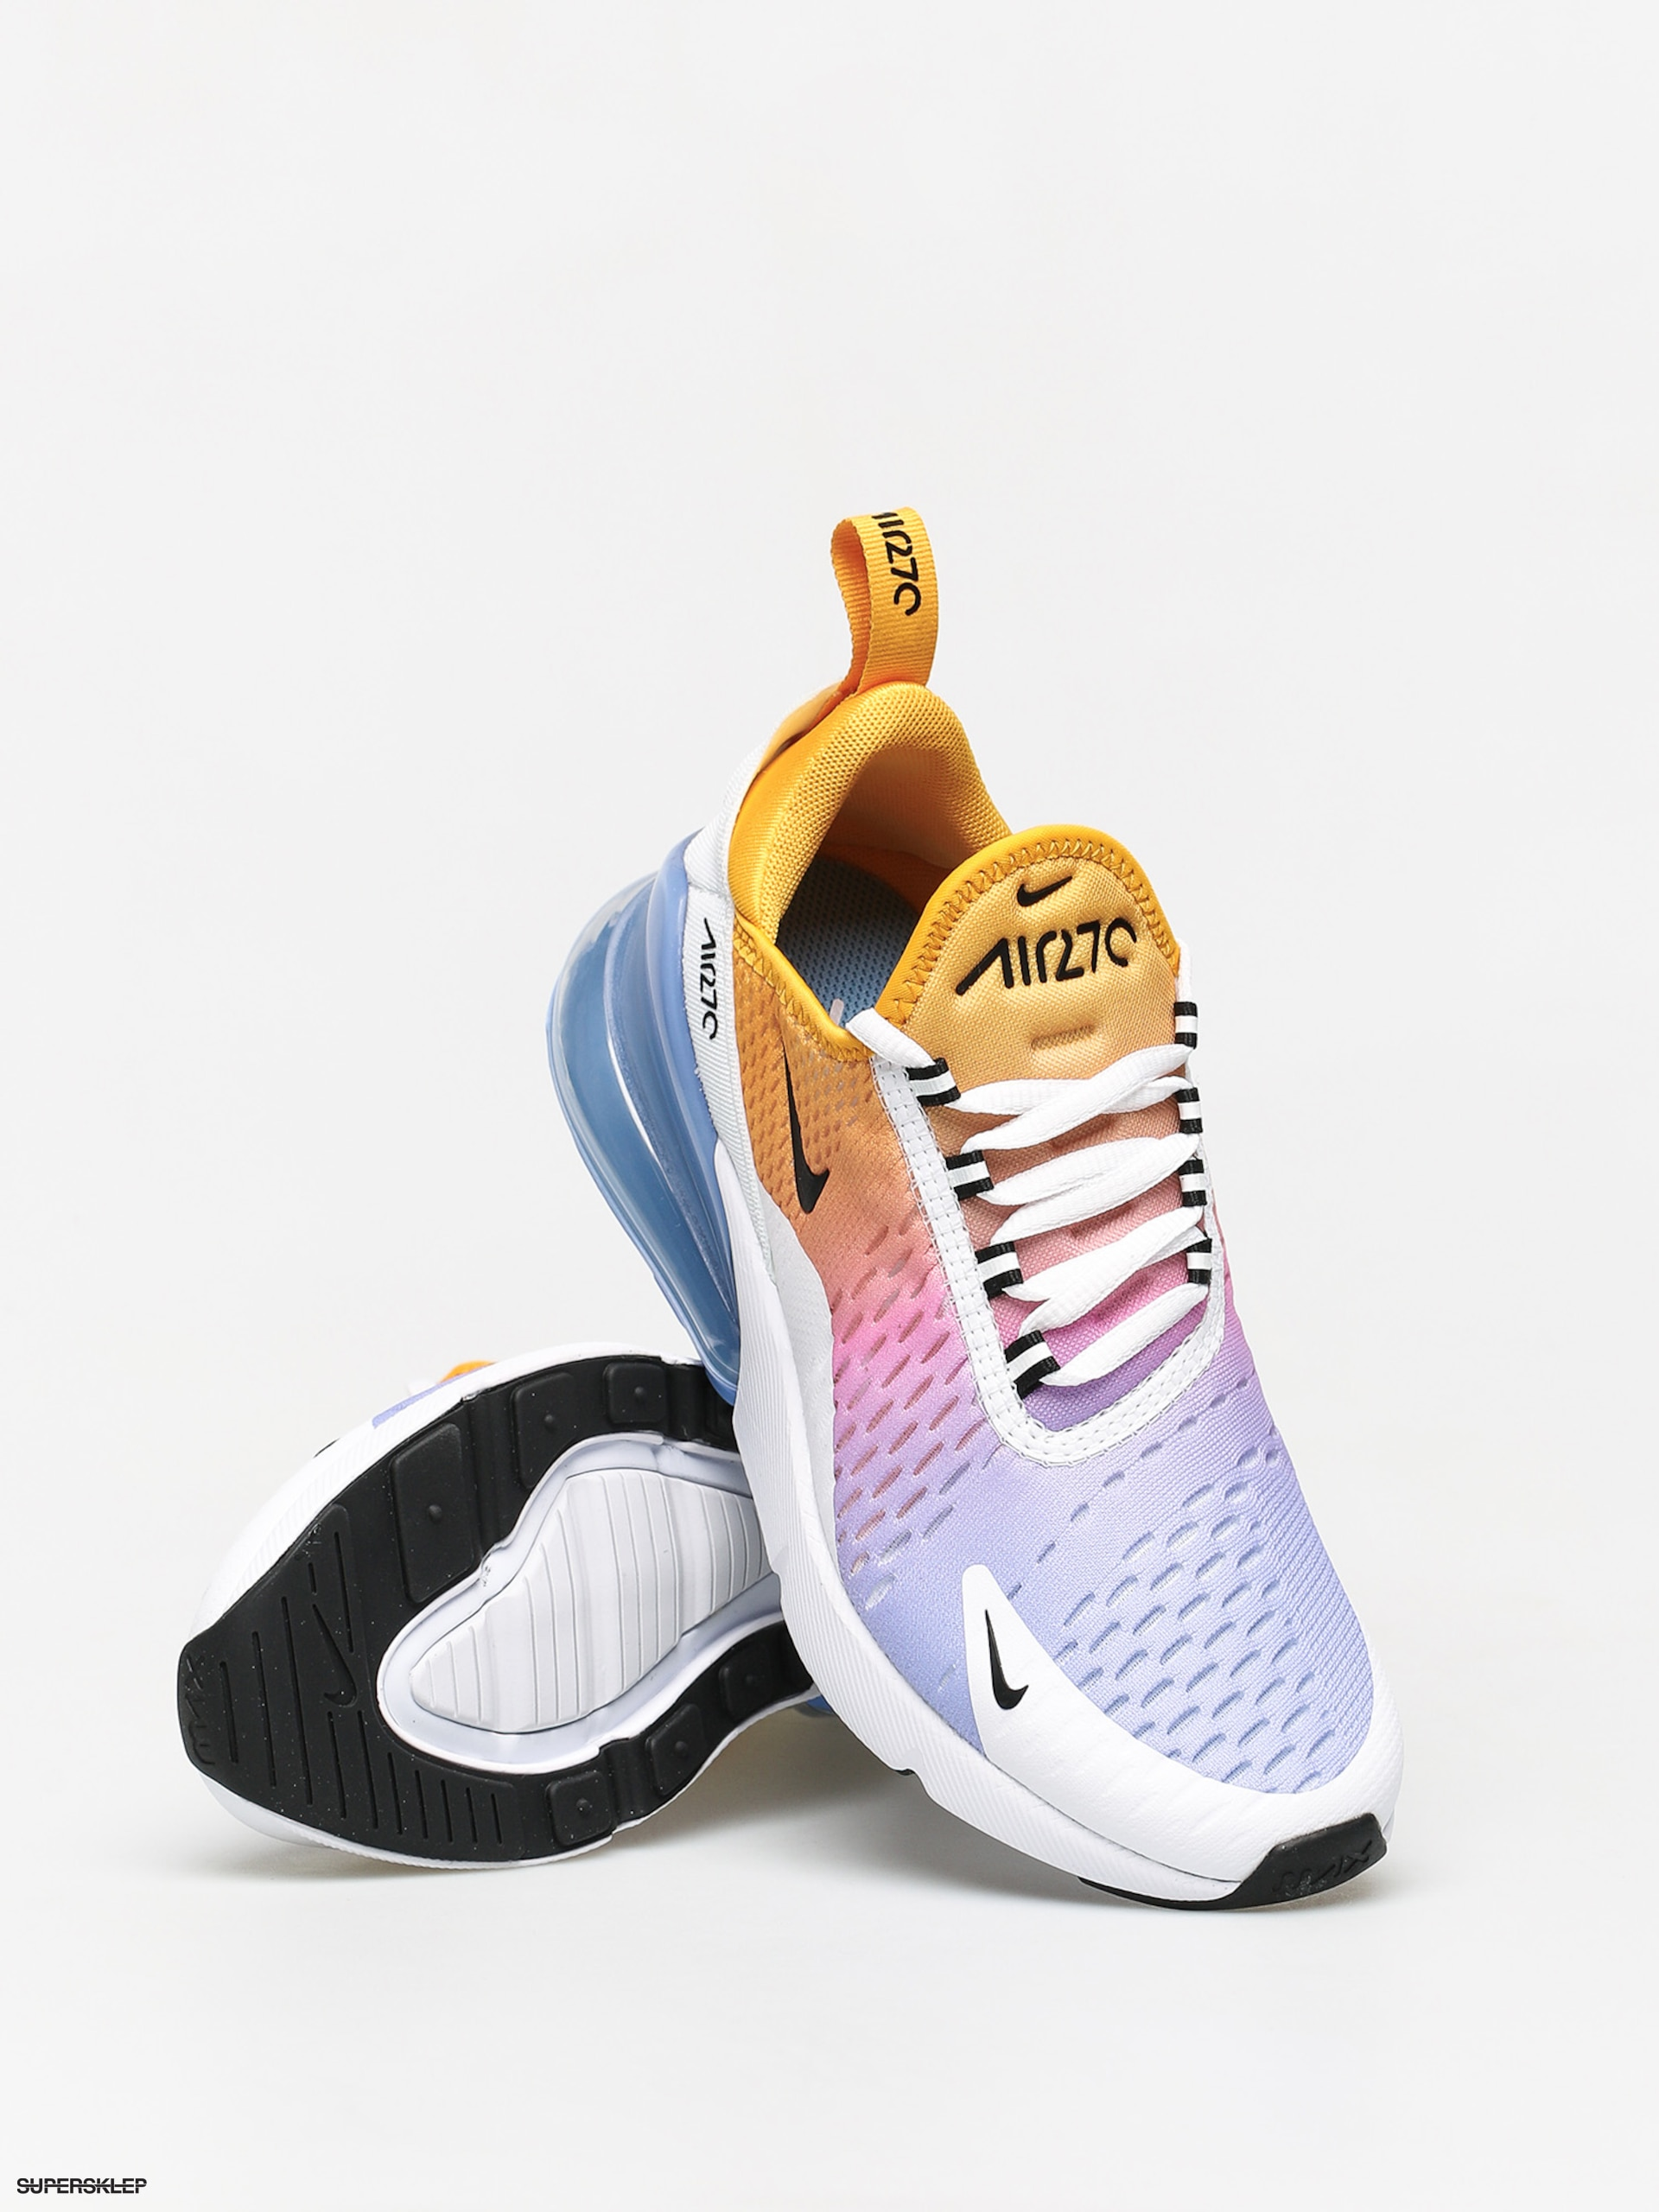 Nike Air Max 270 University Gold and Black